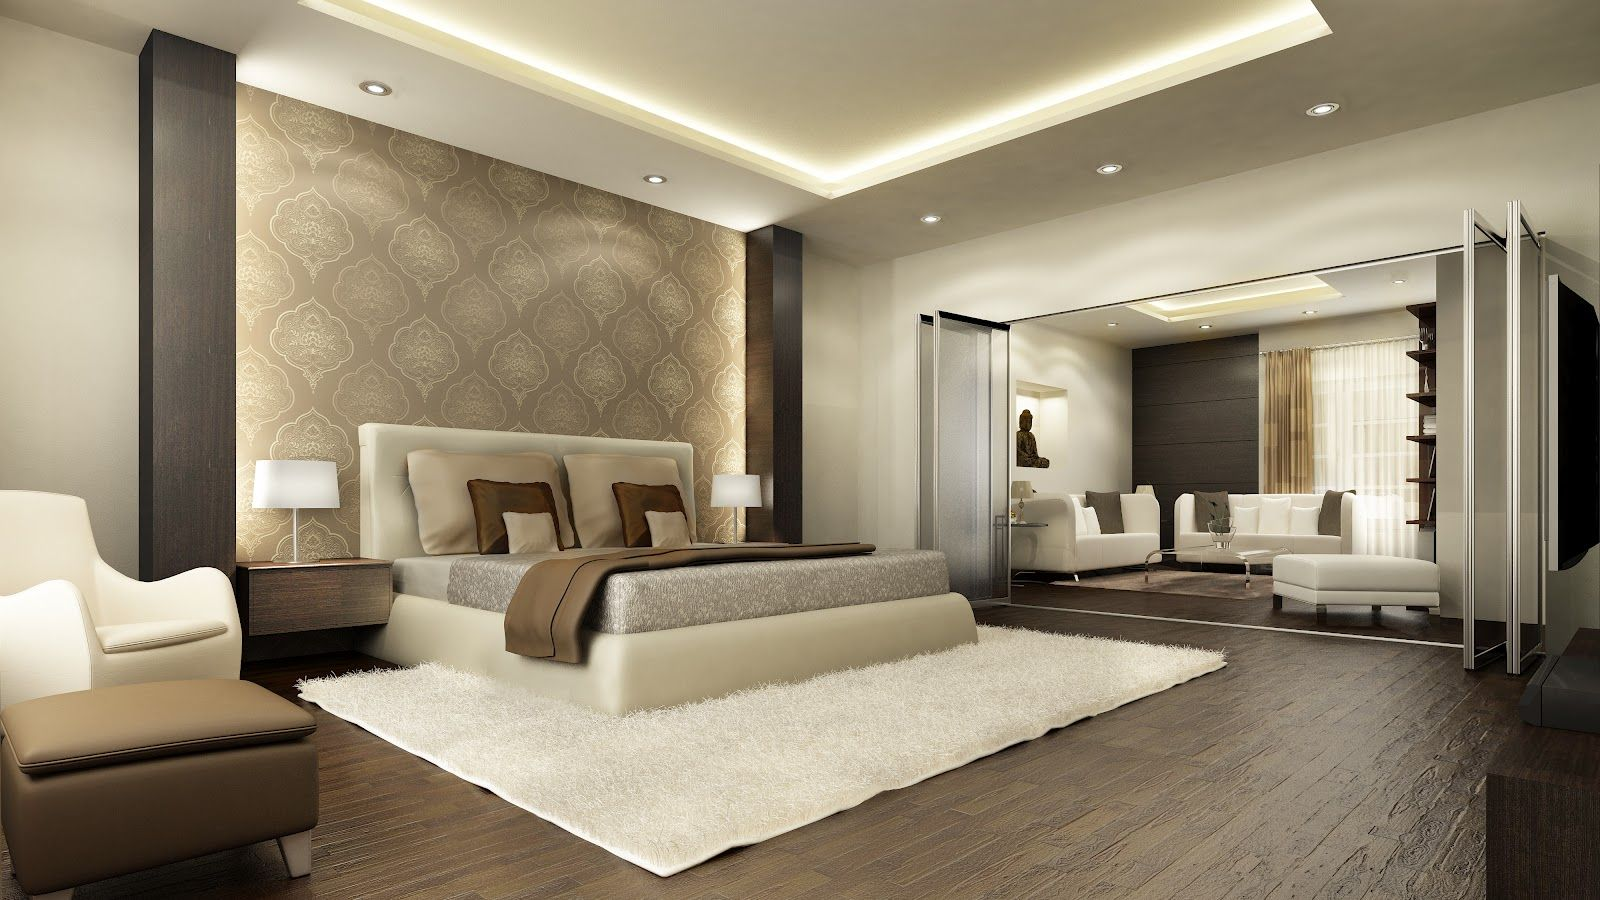 Fancy Sitting Master Bedroom Modern Designs. Bedroom Modern Design. Fancy  Sitting Master Designs.